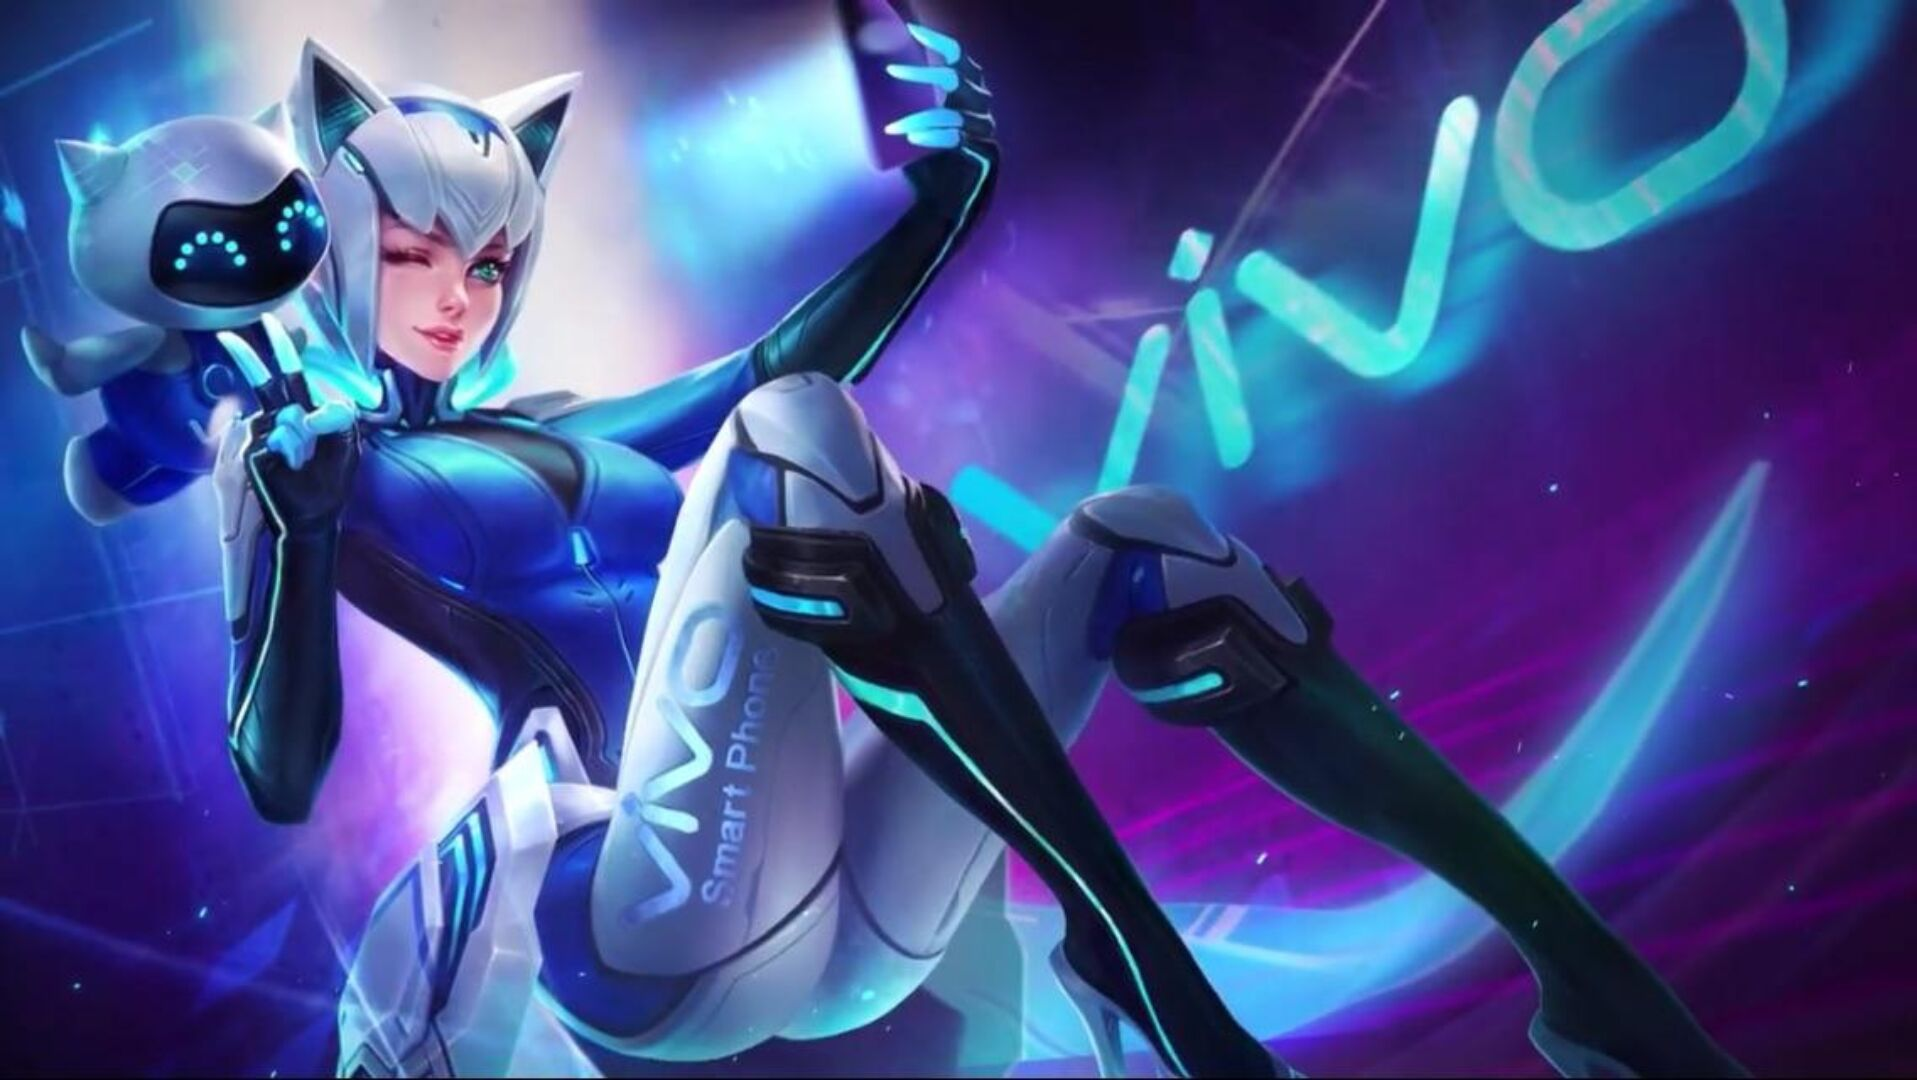 How To Use Eudora In Mobile Legends A Beginner S Guide